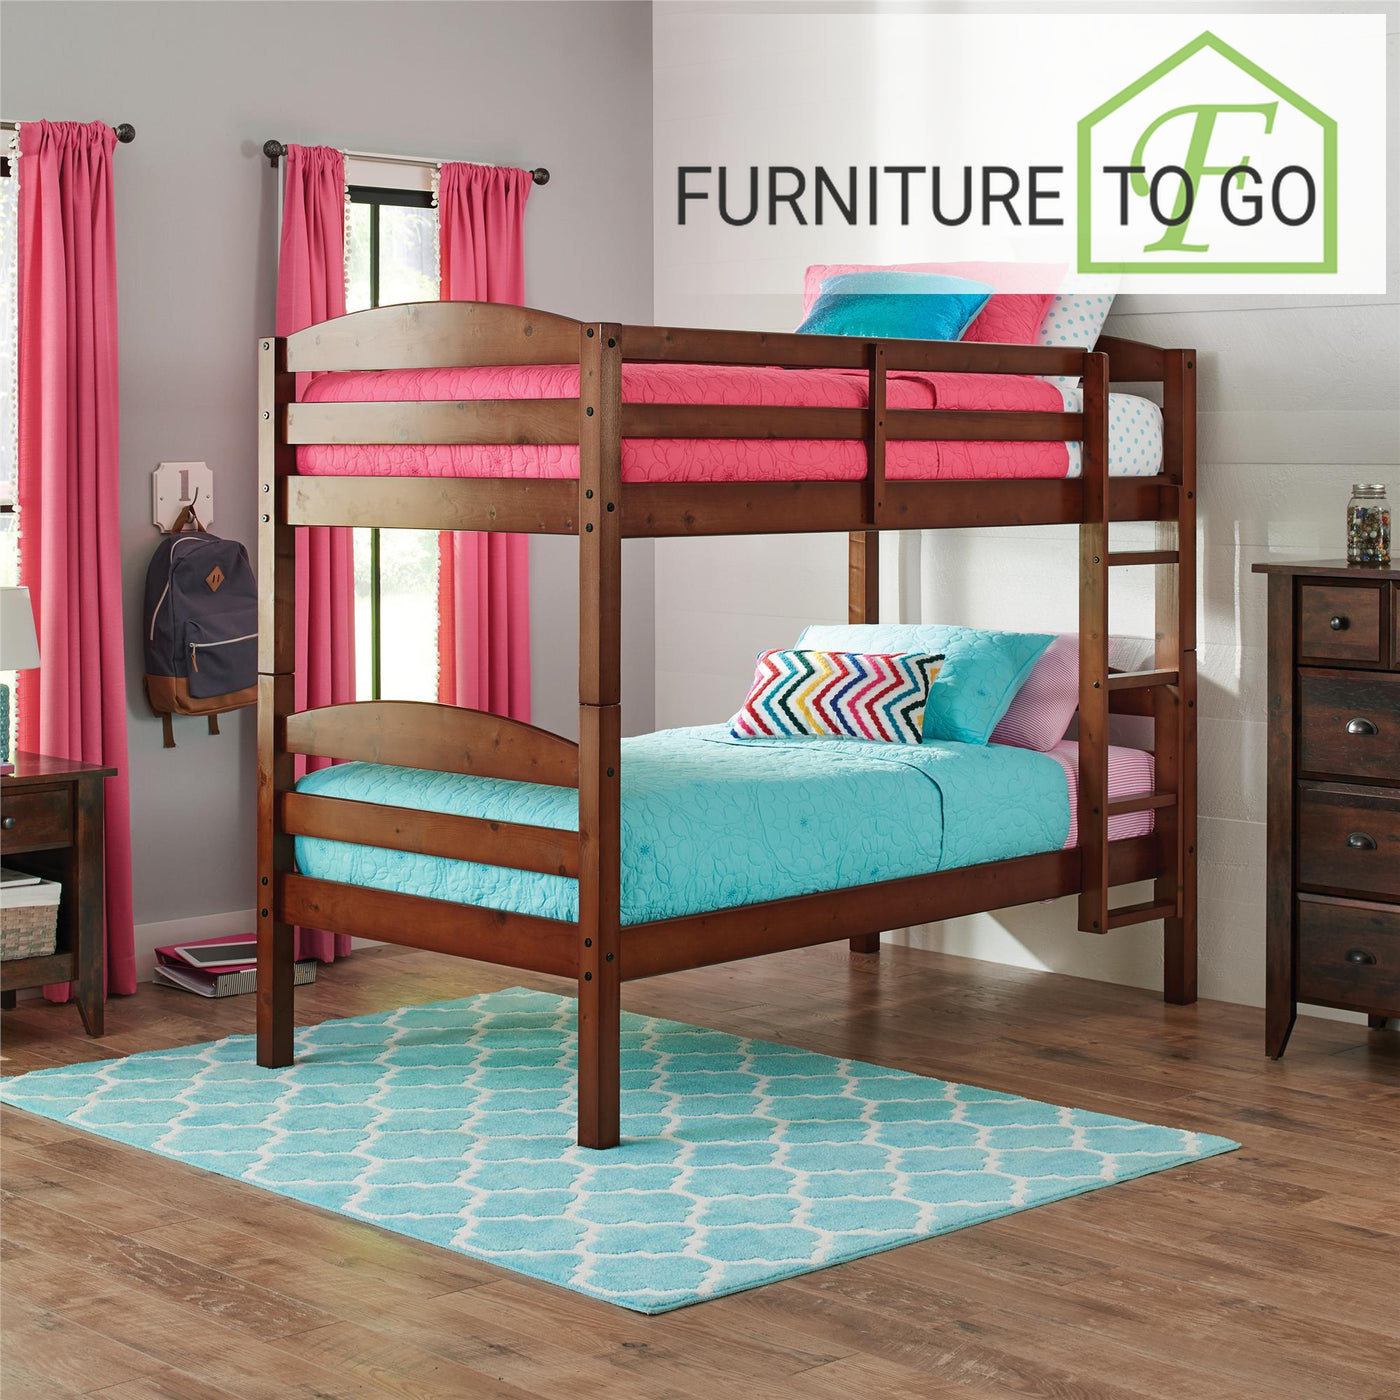 Clearance Furniture In Dallas 125 00 Cherry Twin Over Twin Wood Bunk